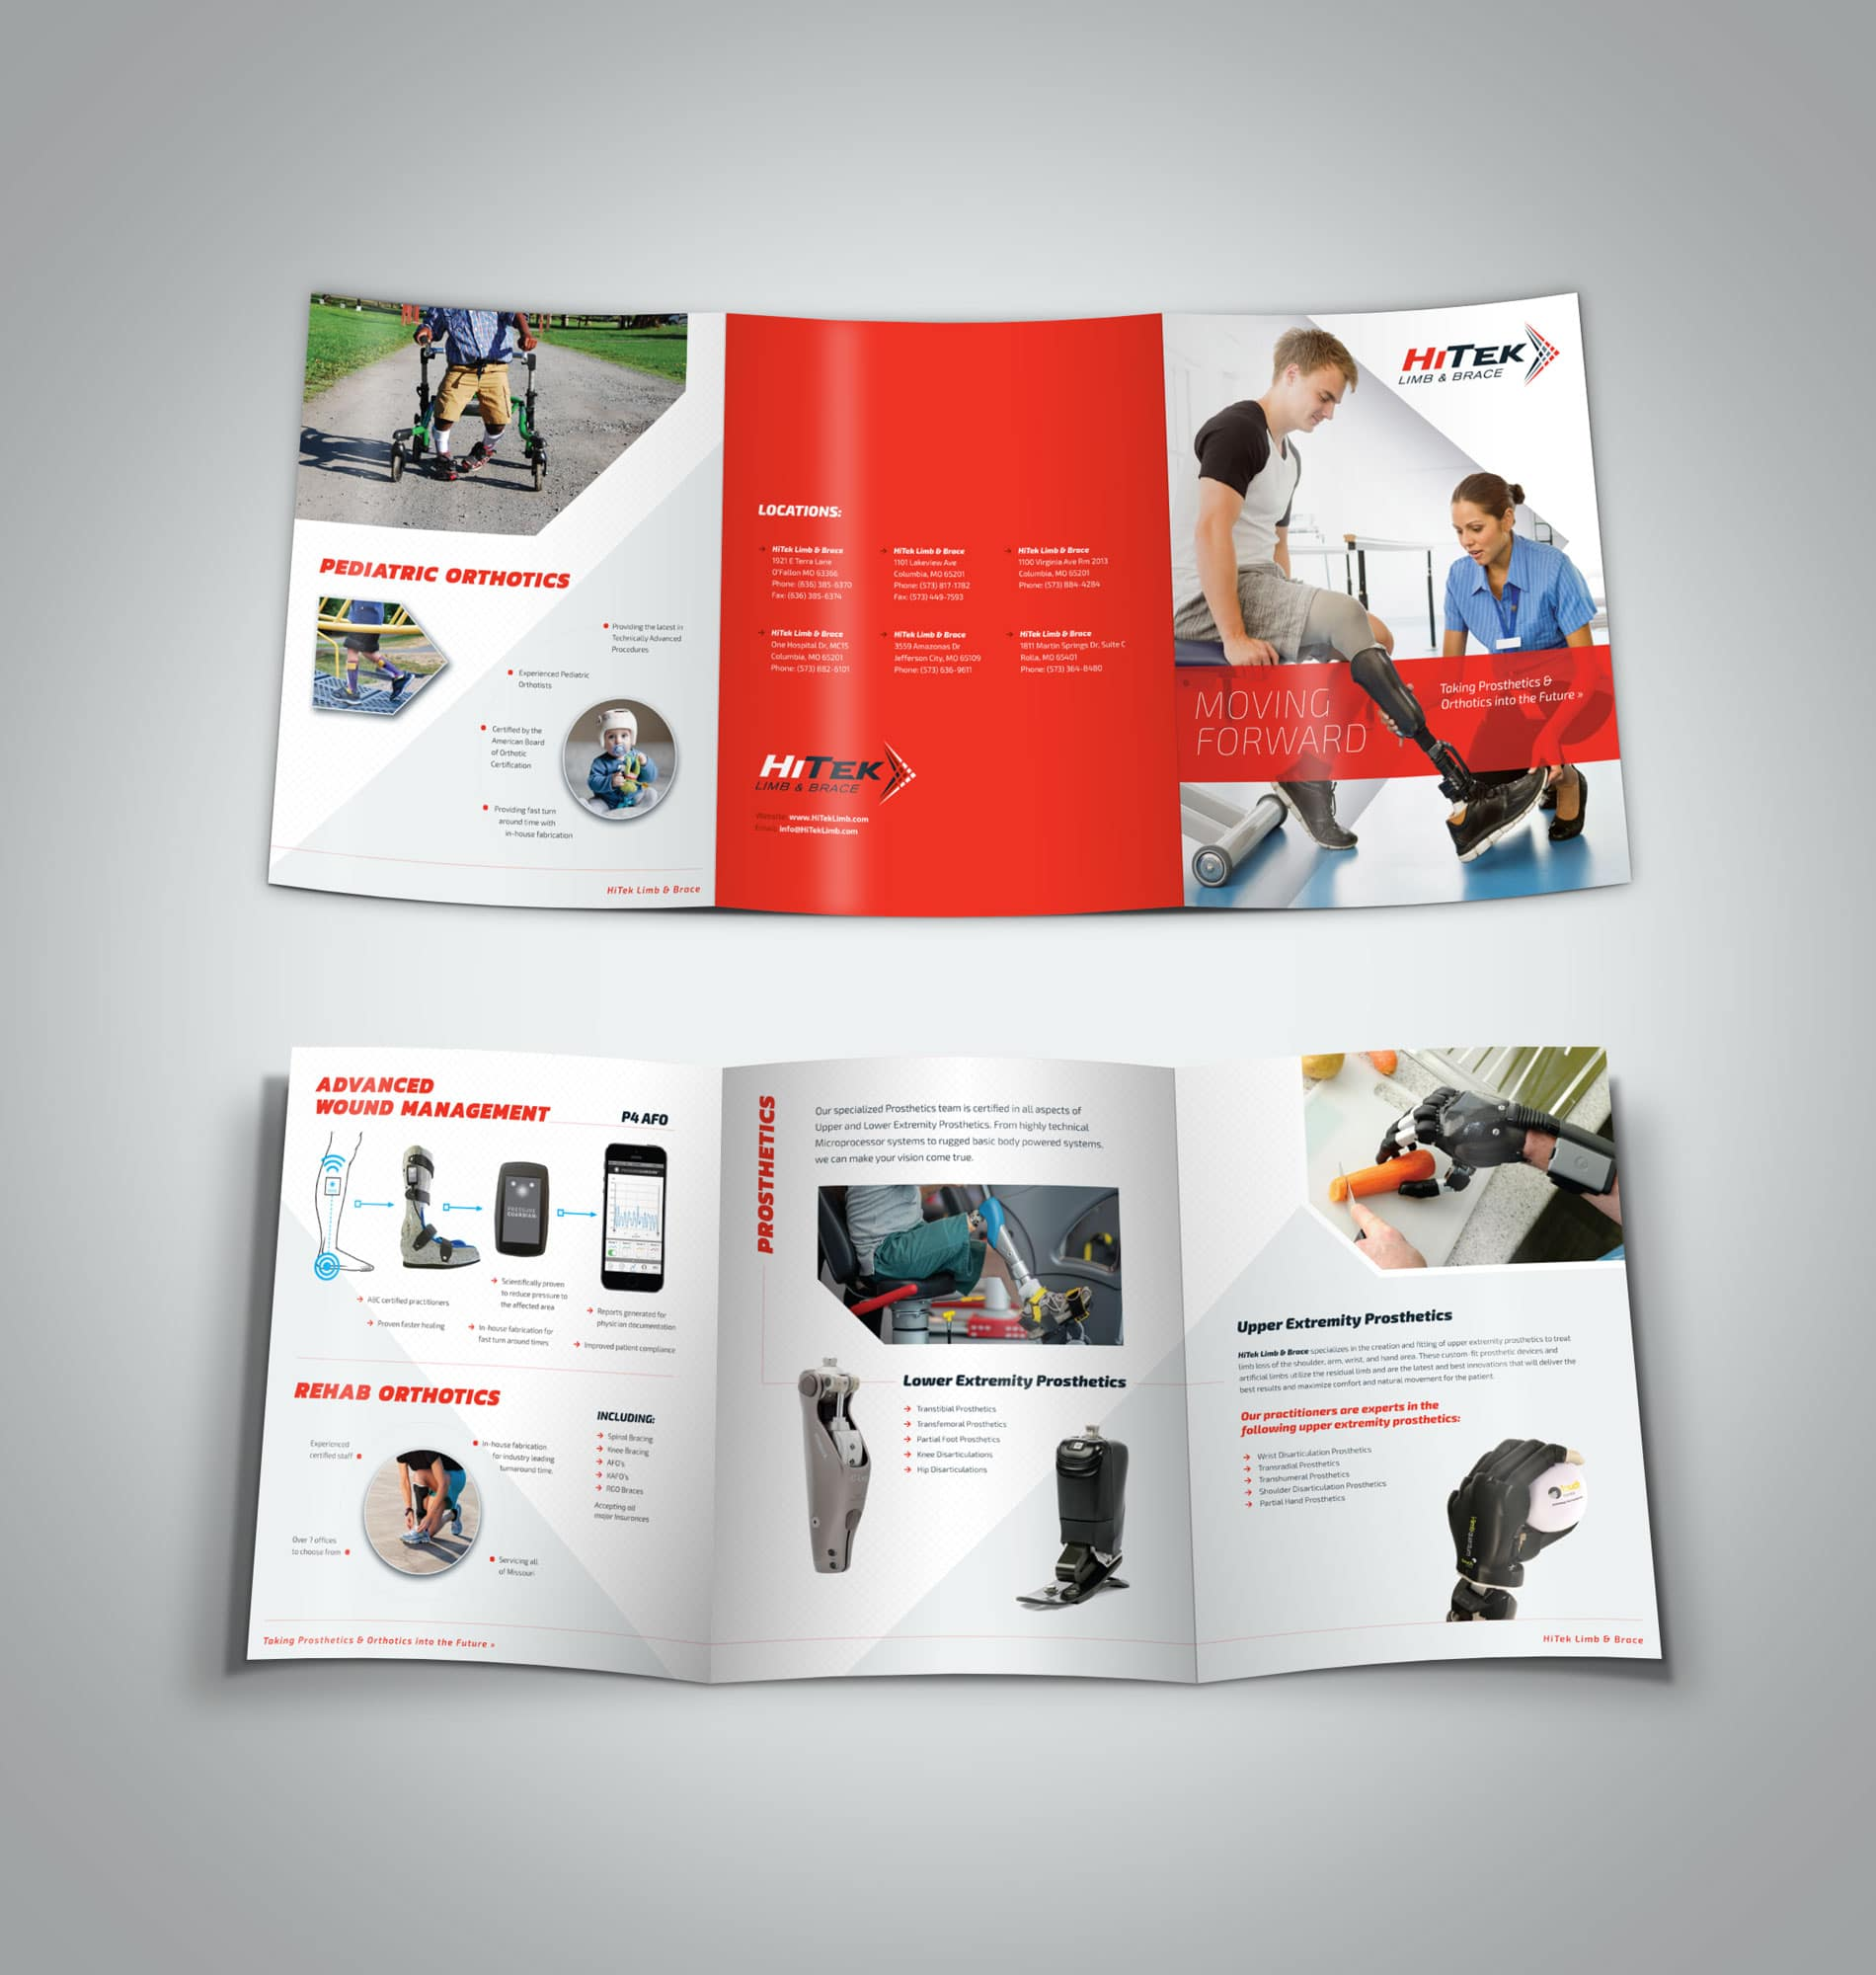 HiTek large trifold brochure design